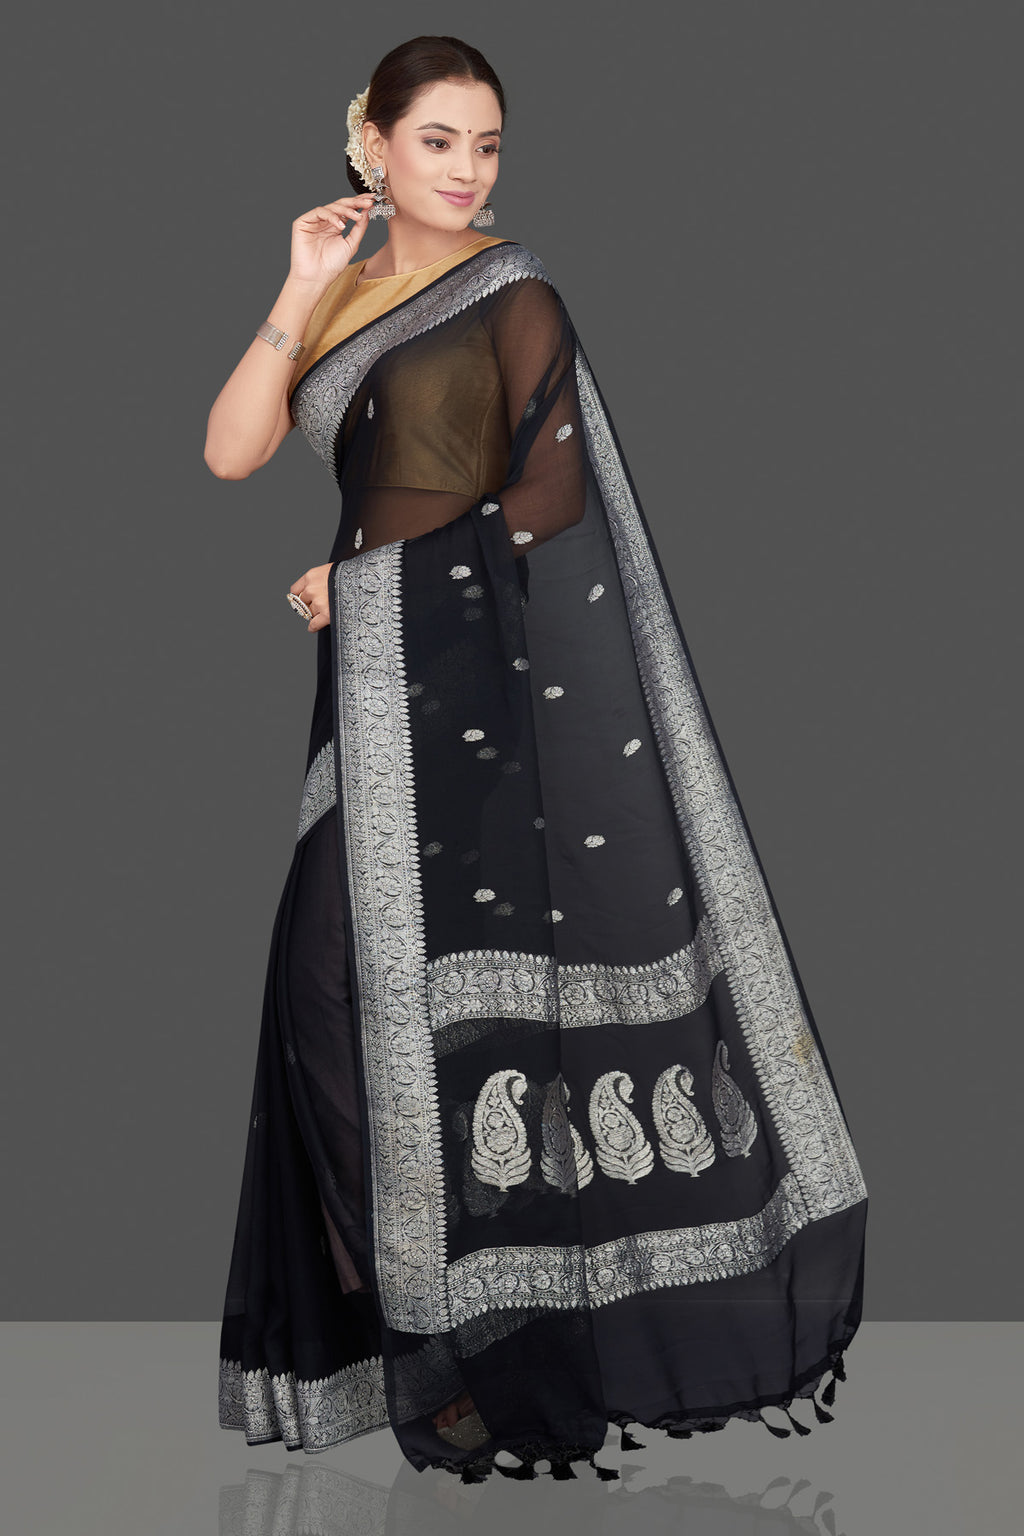 Buy black chiffon georgette saree online in USA with silver zari border. Go for stunning Indian designer sarees, georgette sarees, handwoven saris, embroidered sarees for festive occasions and weddings from Pure Elegance Indian clothing store in USA.-full view